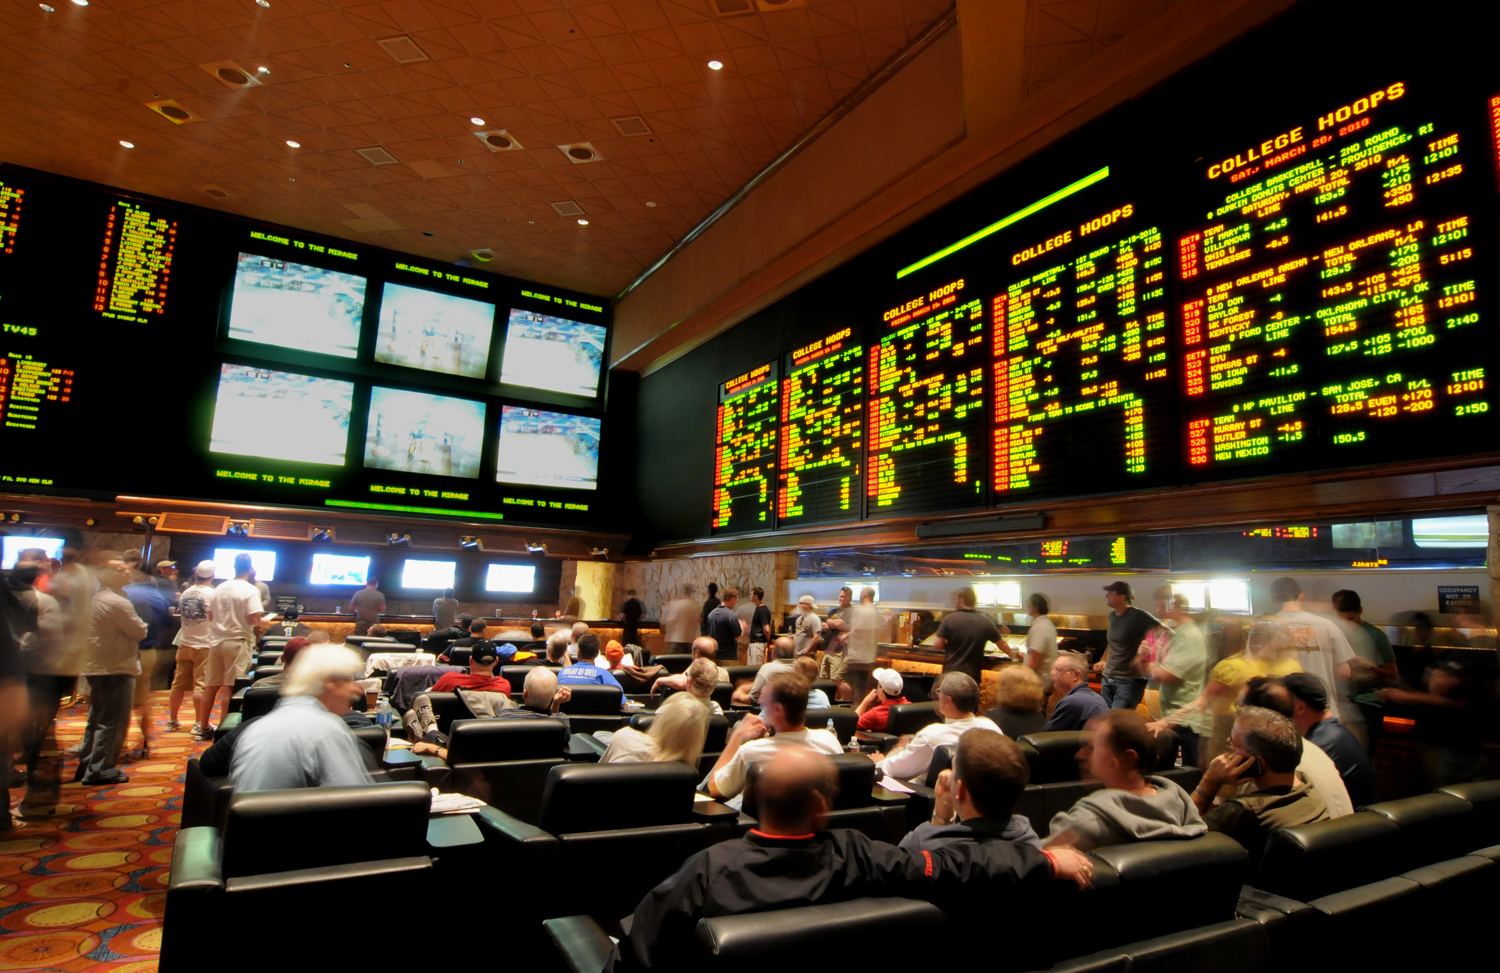 college football odds and scores top sportsbook online